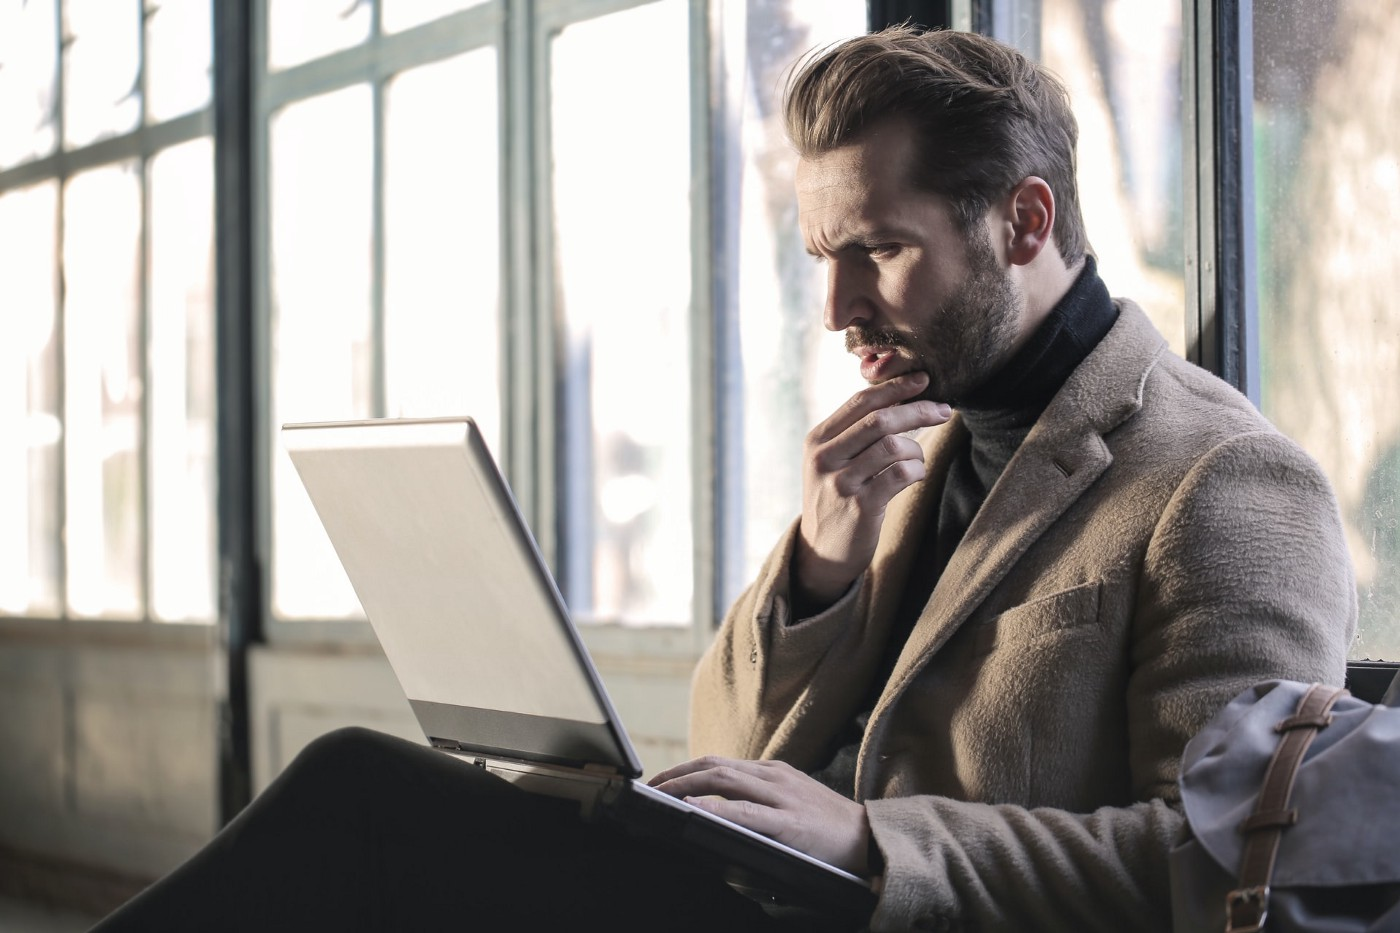 Confused man with laptop